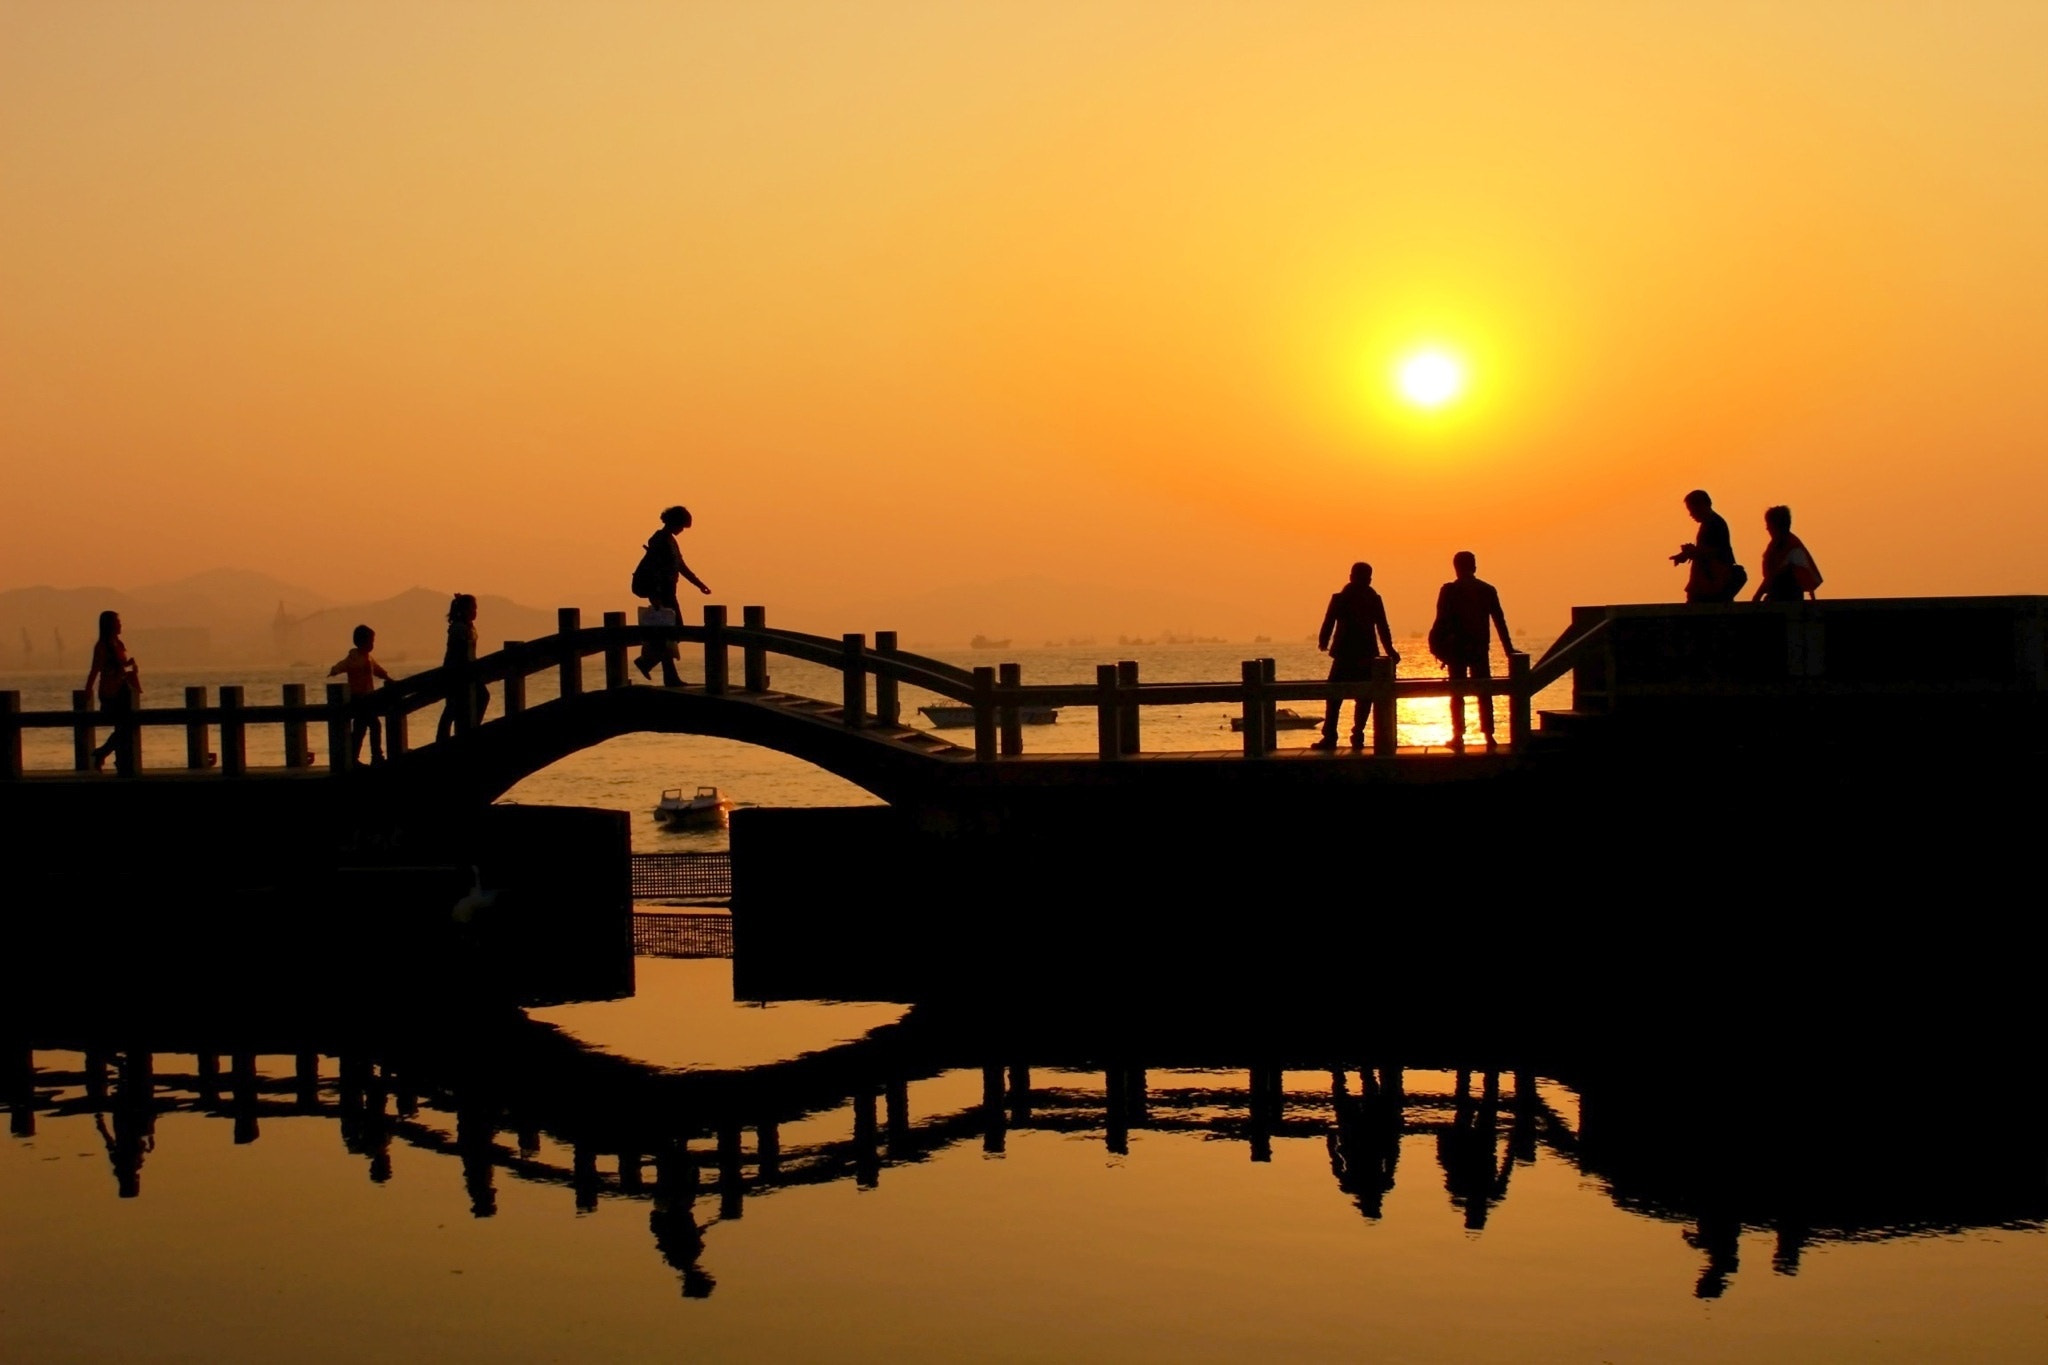 Photograph Toward evening 3 by Shiping Zhou on 500px